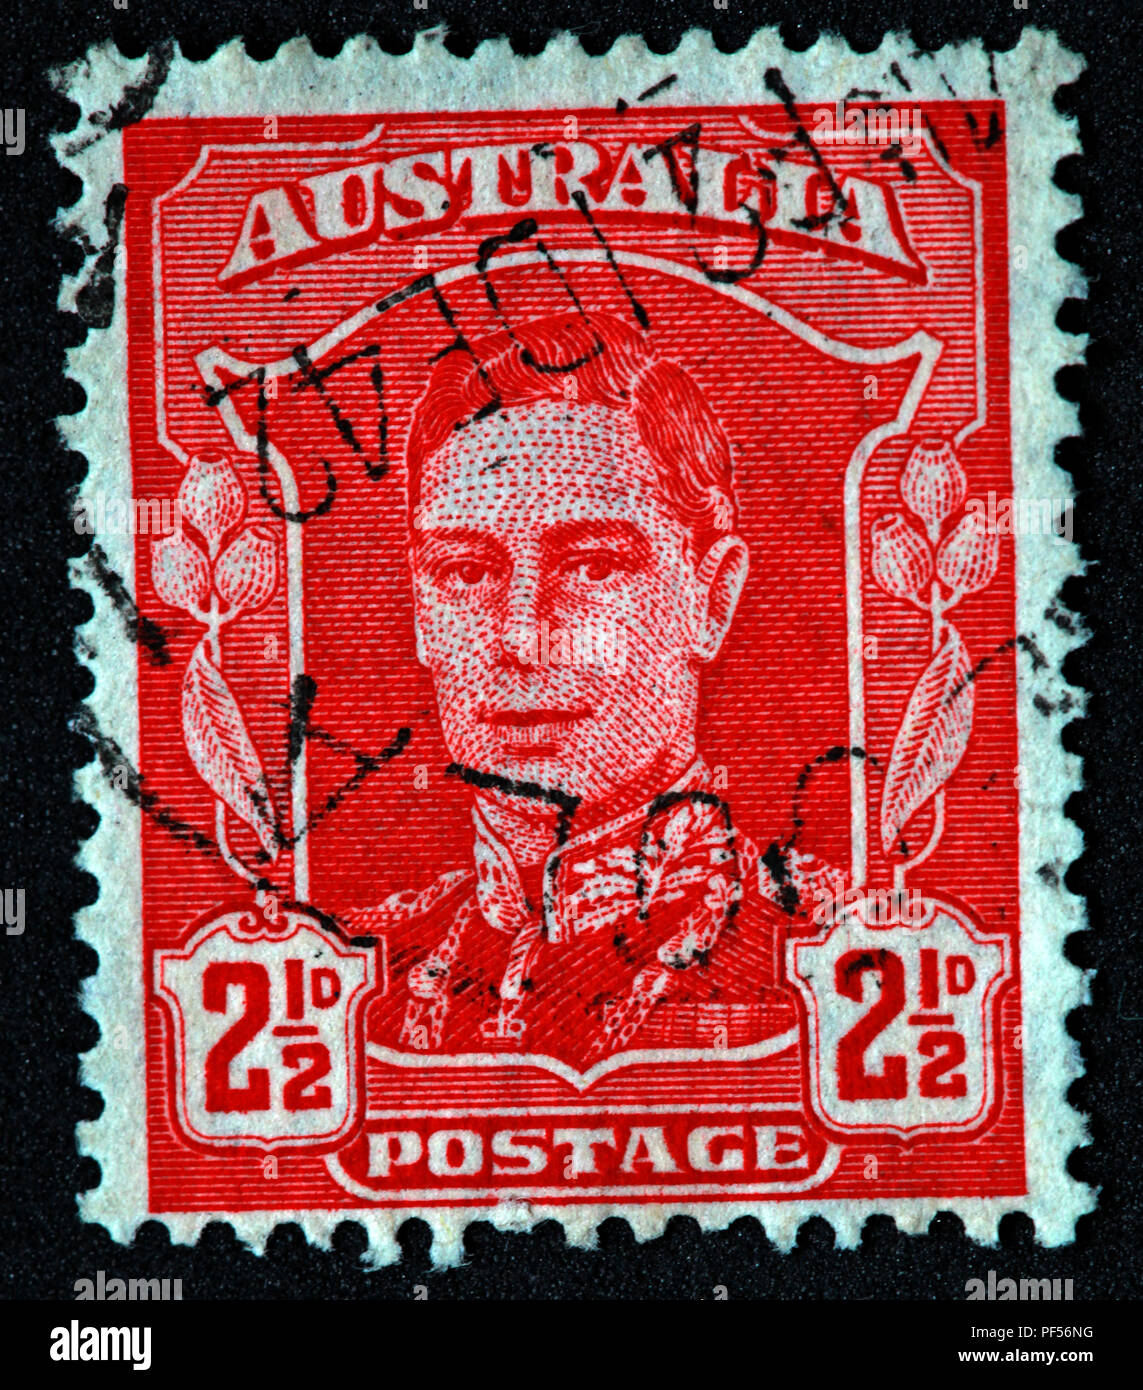 Gotonysmith,@Hotpixuk,Hotpixuk,rare old stamps,used stamps,Postal,letters,letter,communication,print,analogue,historic stamps,Aussie,Used Red,Australia,1942-44,Early Issue,Fine Used,2.5d,2.5,red postage stamp,postage stamp,GVI issue